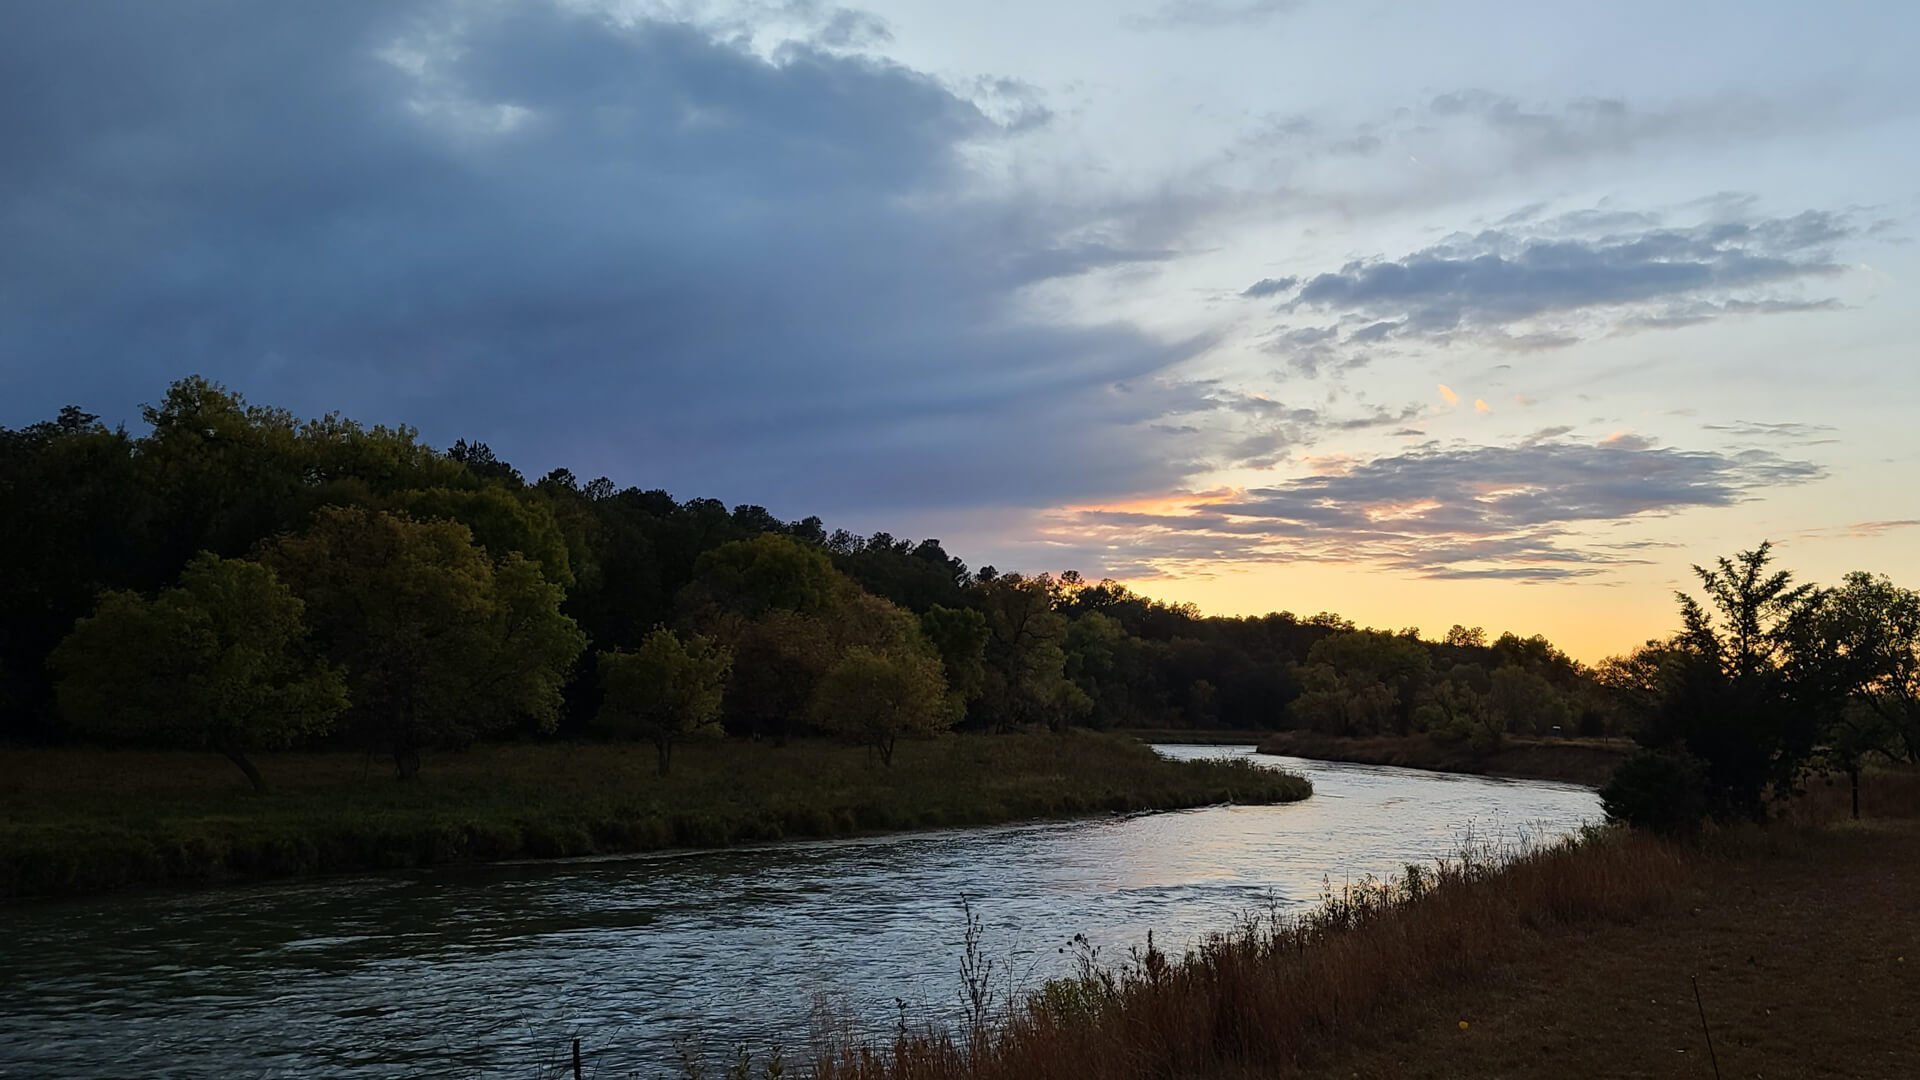 Niobrara River with Sunset. Spring Time